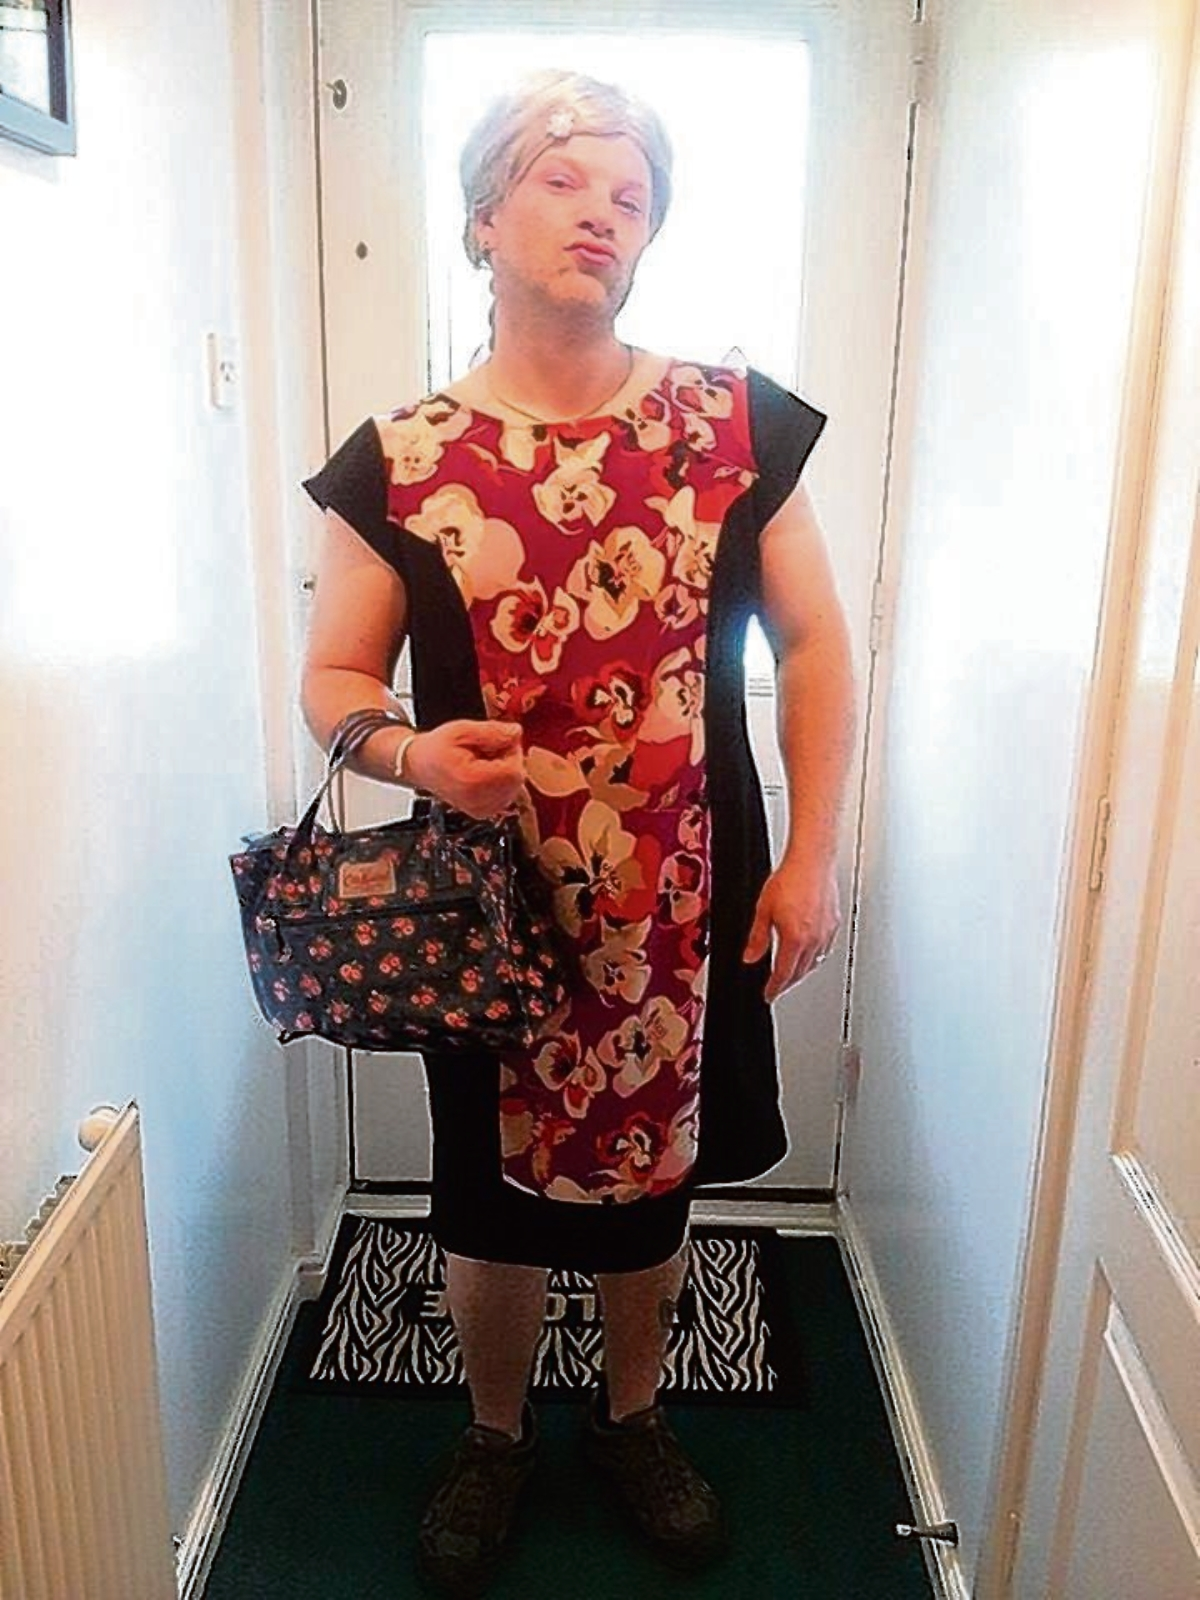 Russell's day in drag for charity